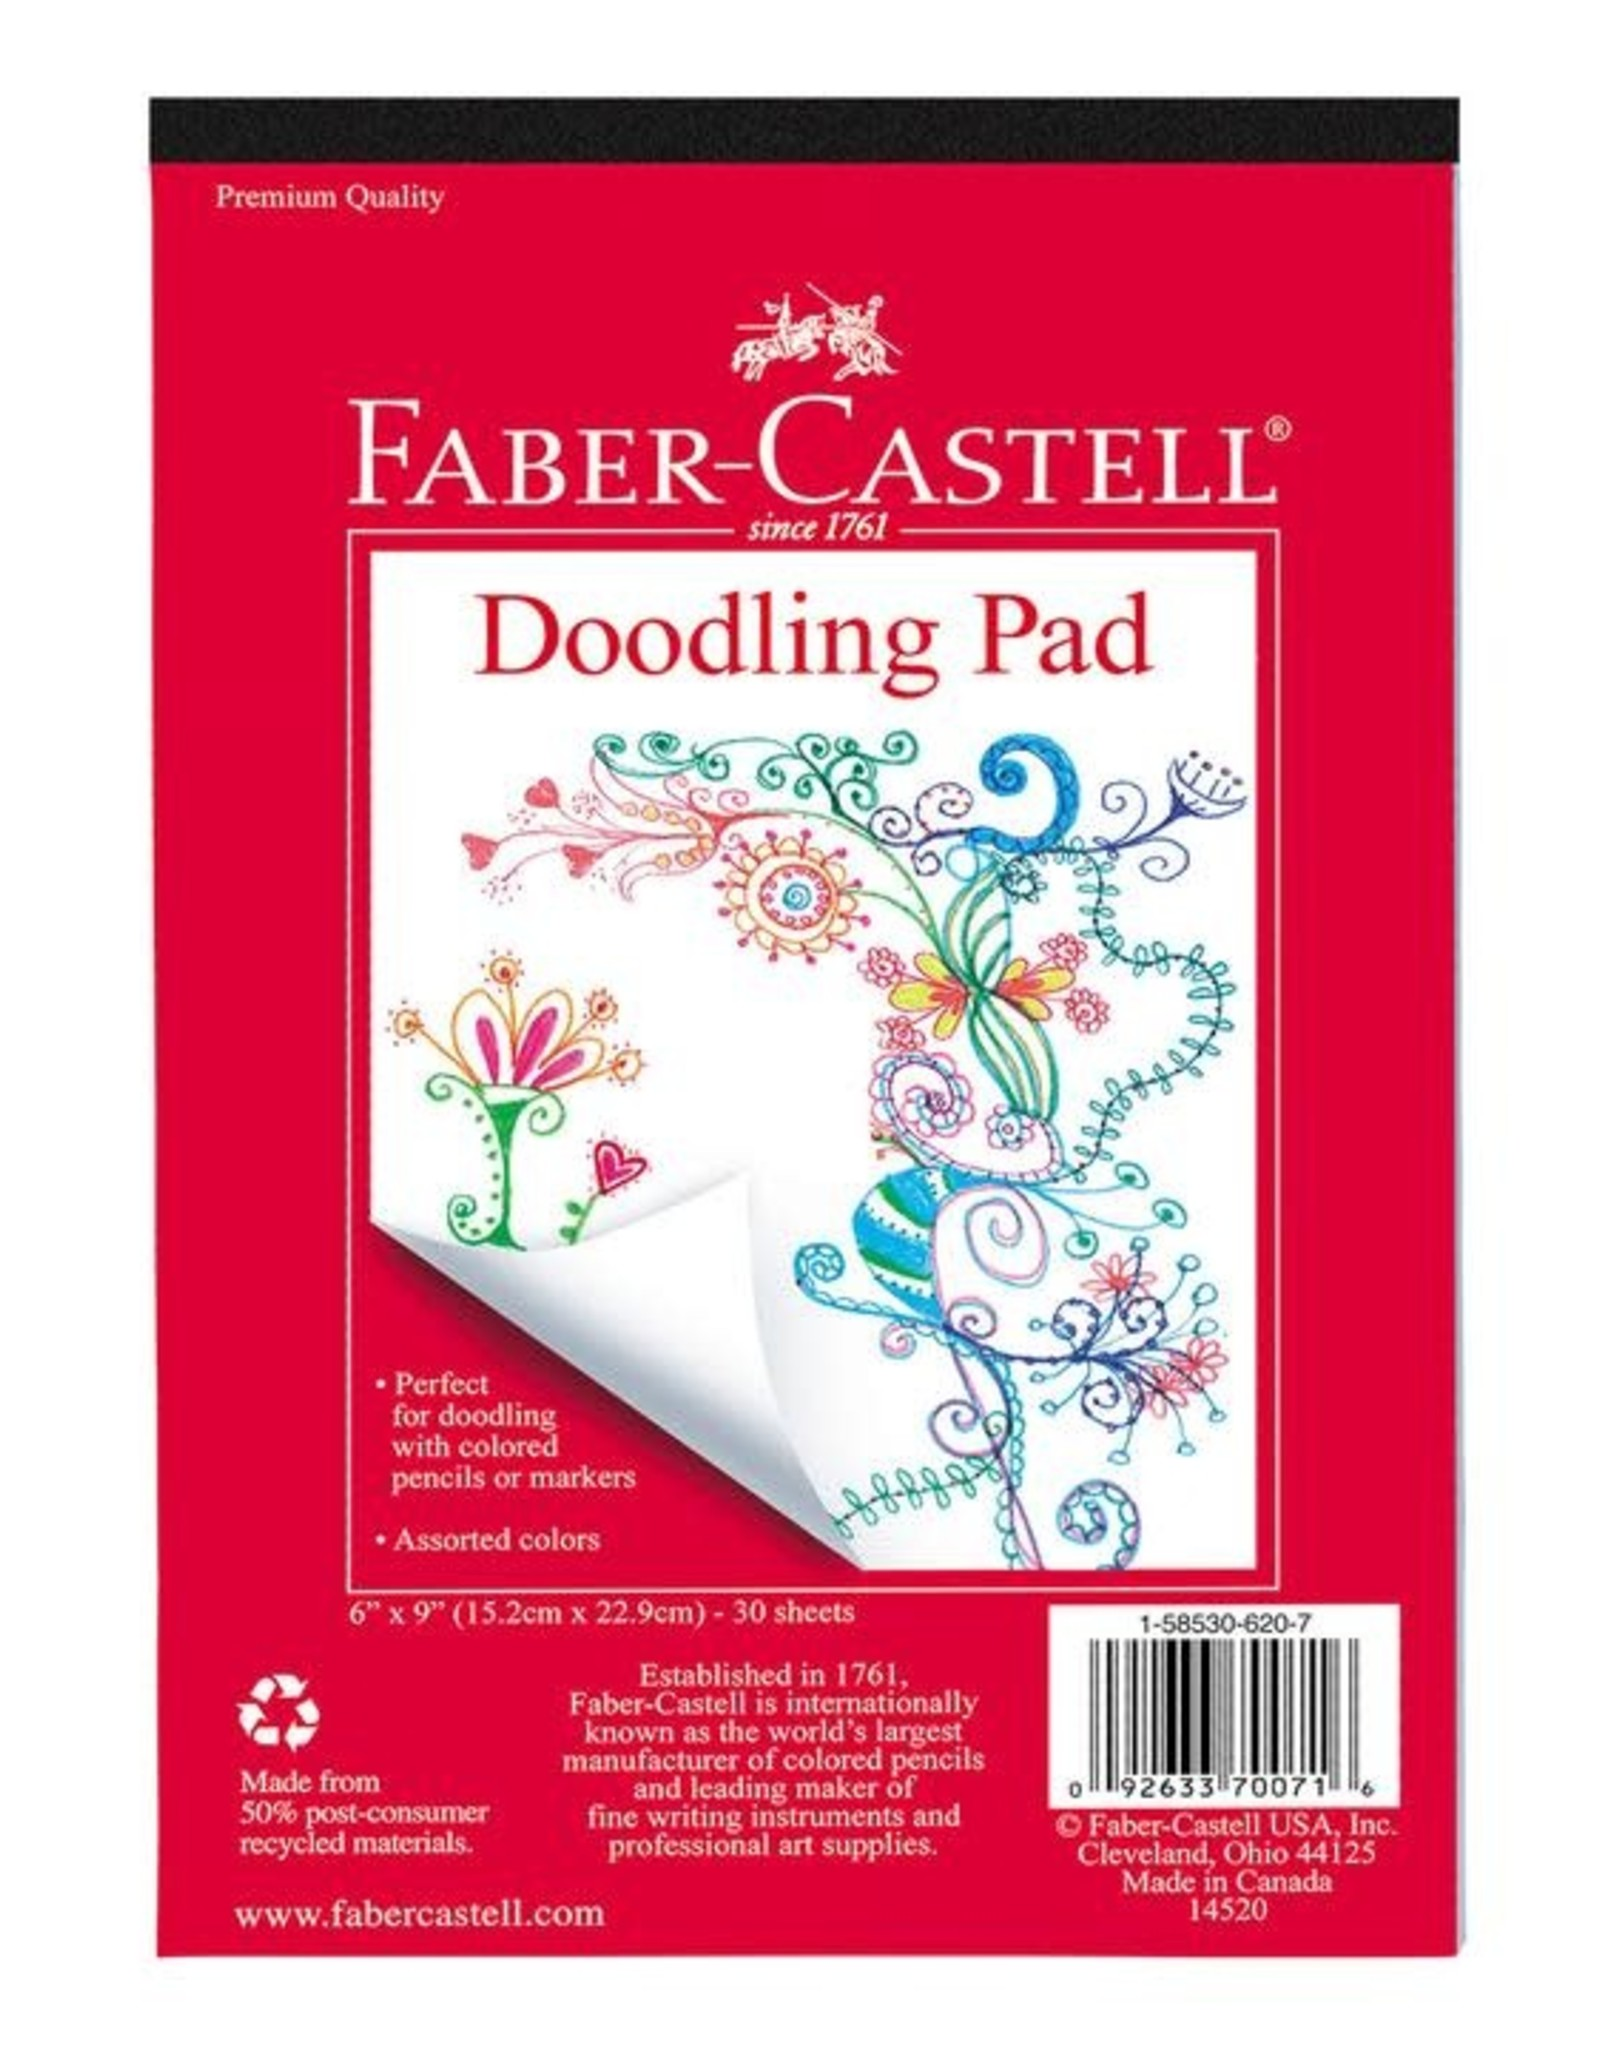 Faber-Castell Art Supply Doodle Pad